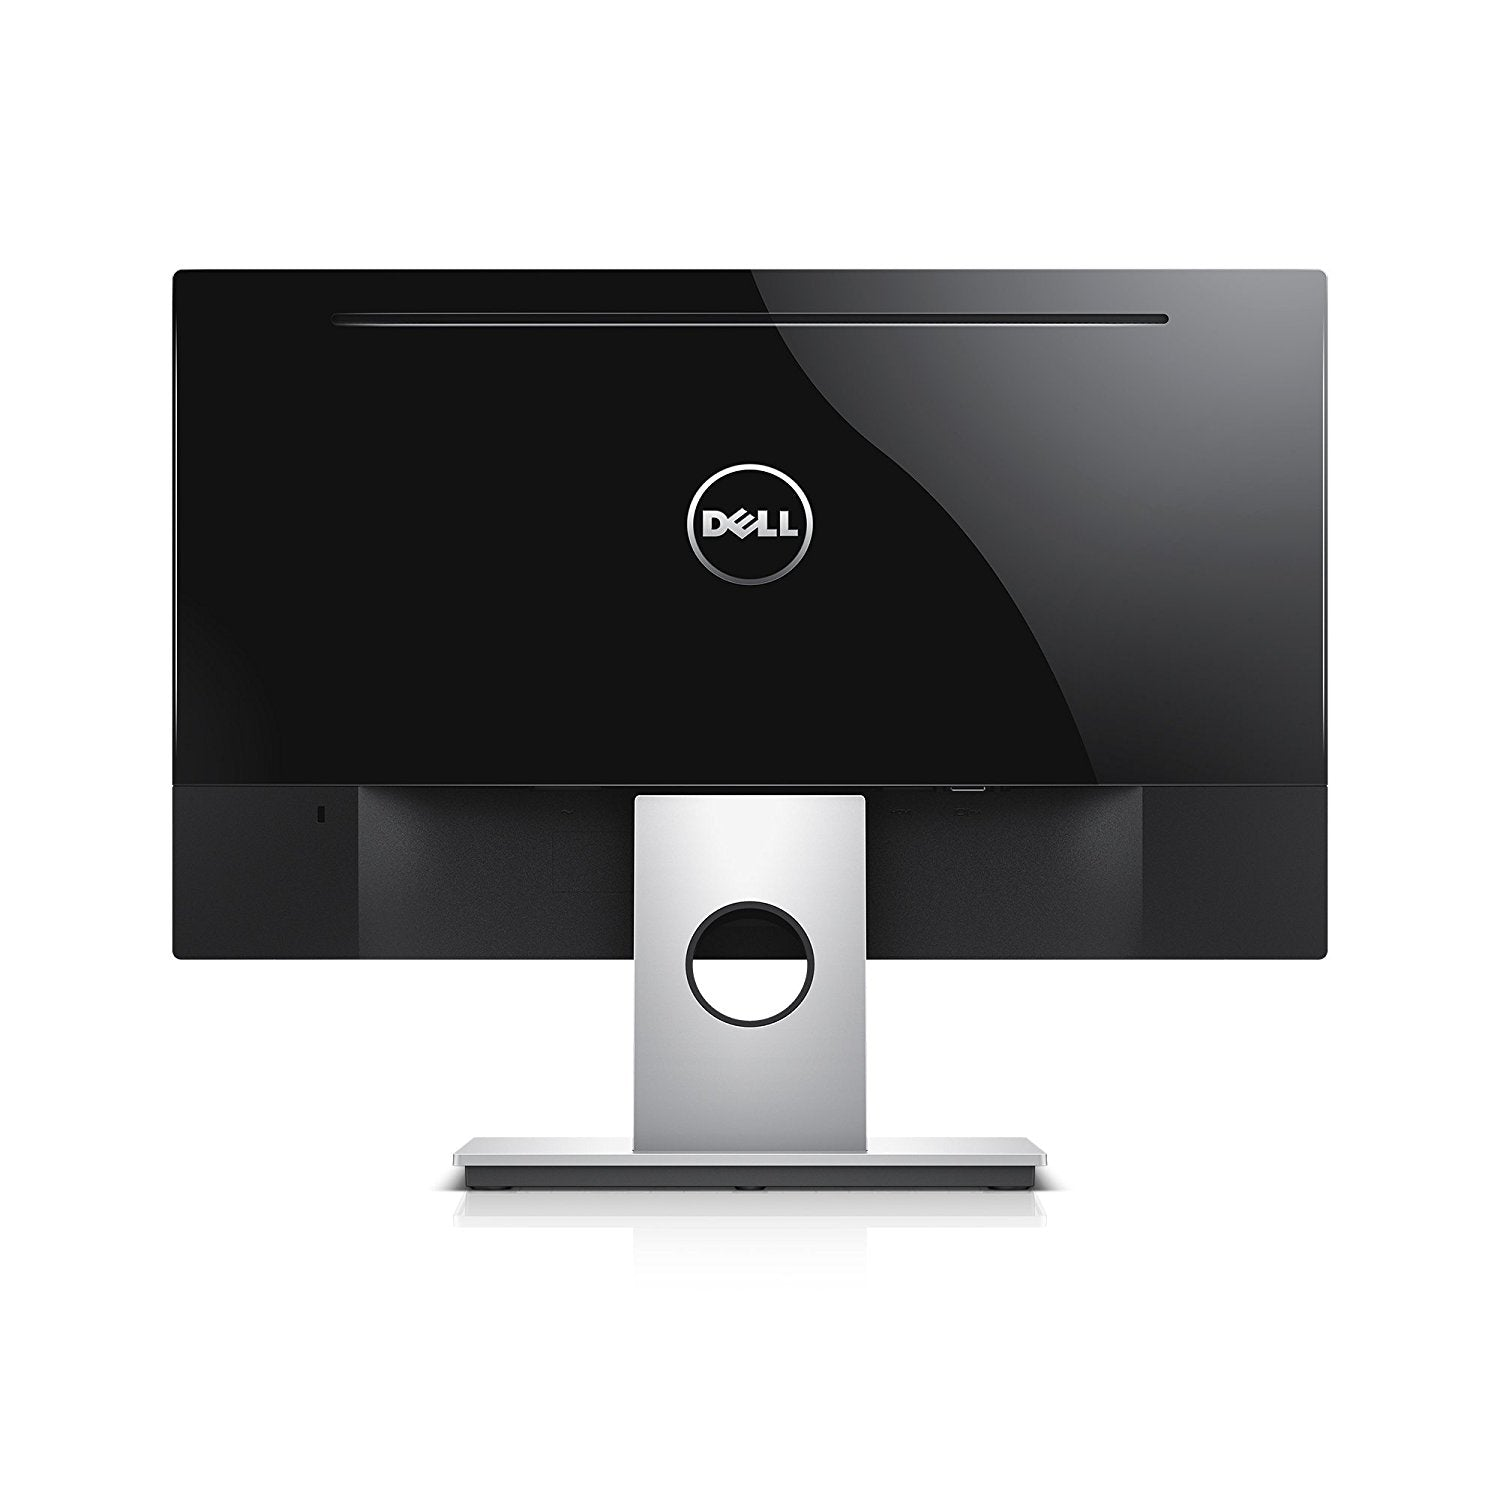 Dell SE2216H 22-inch LED-Lit Monitor (Black)